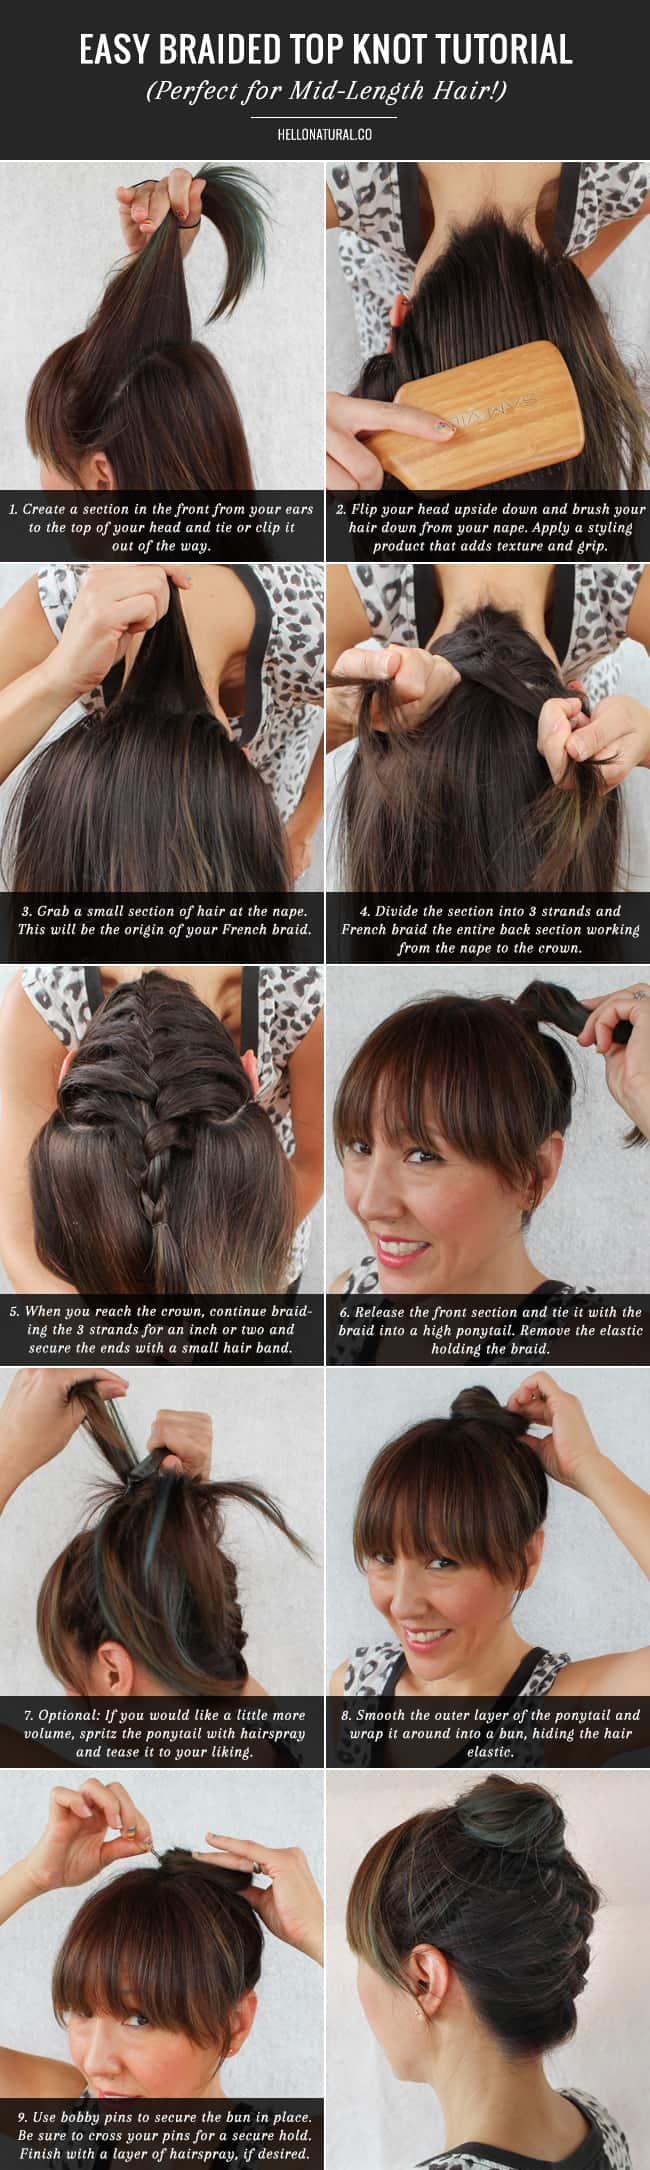 Easy Braided Top Knot Tutorial